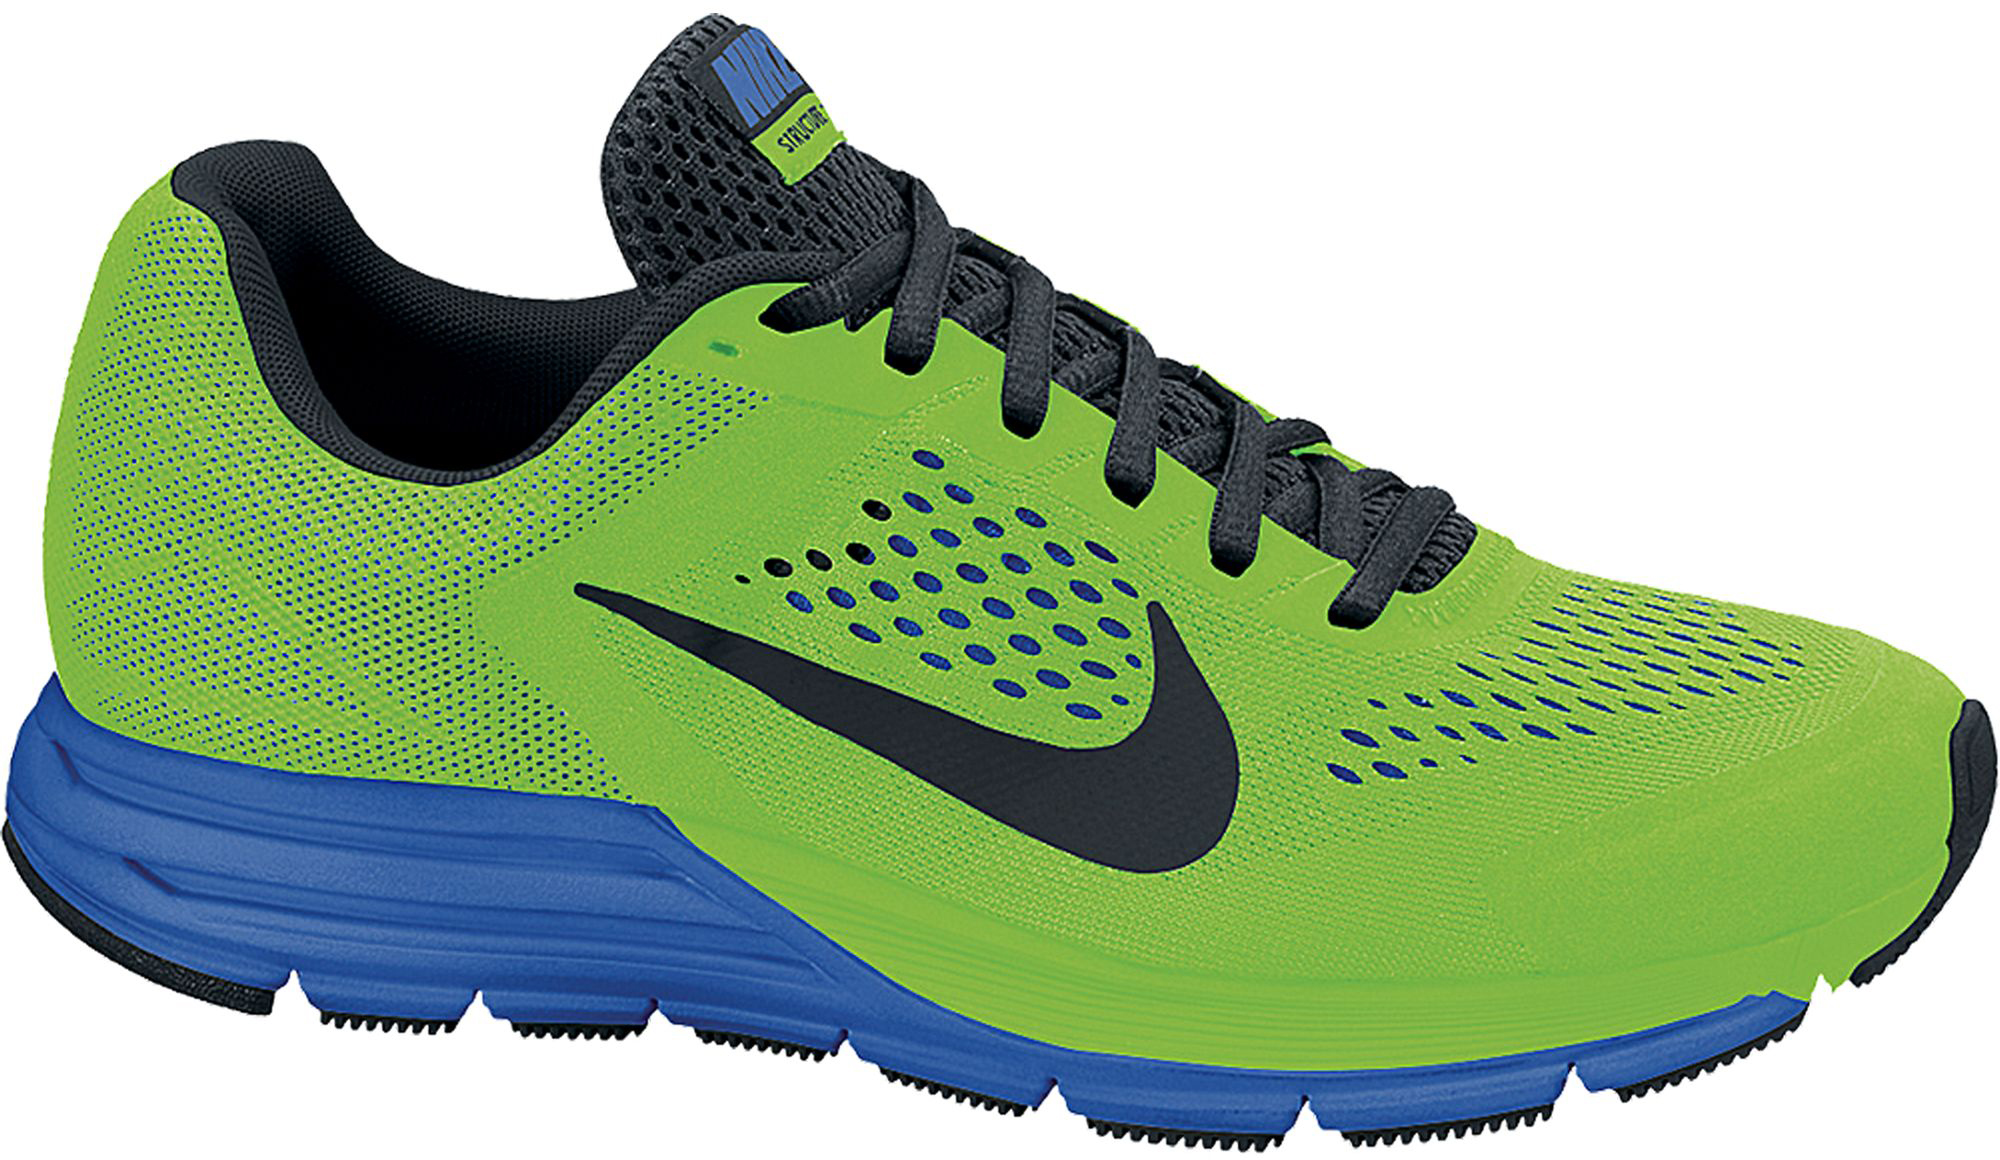 wiggle.dk | Nike Zoom Structure 17 Shoes FA14 | Internal